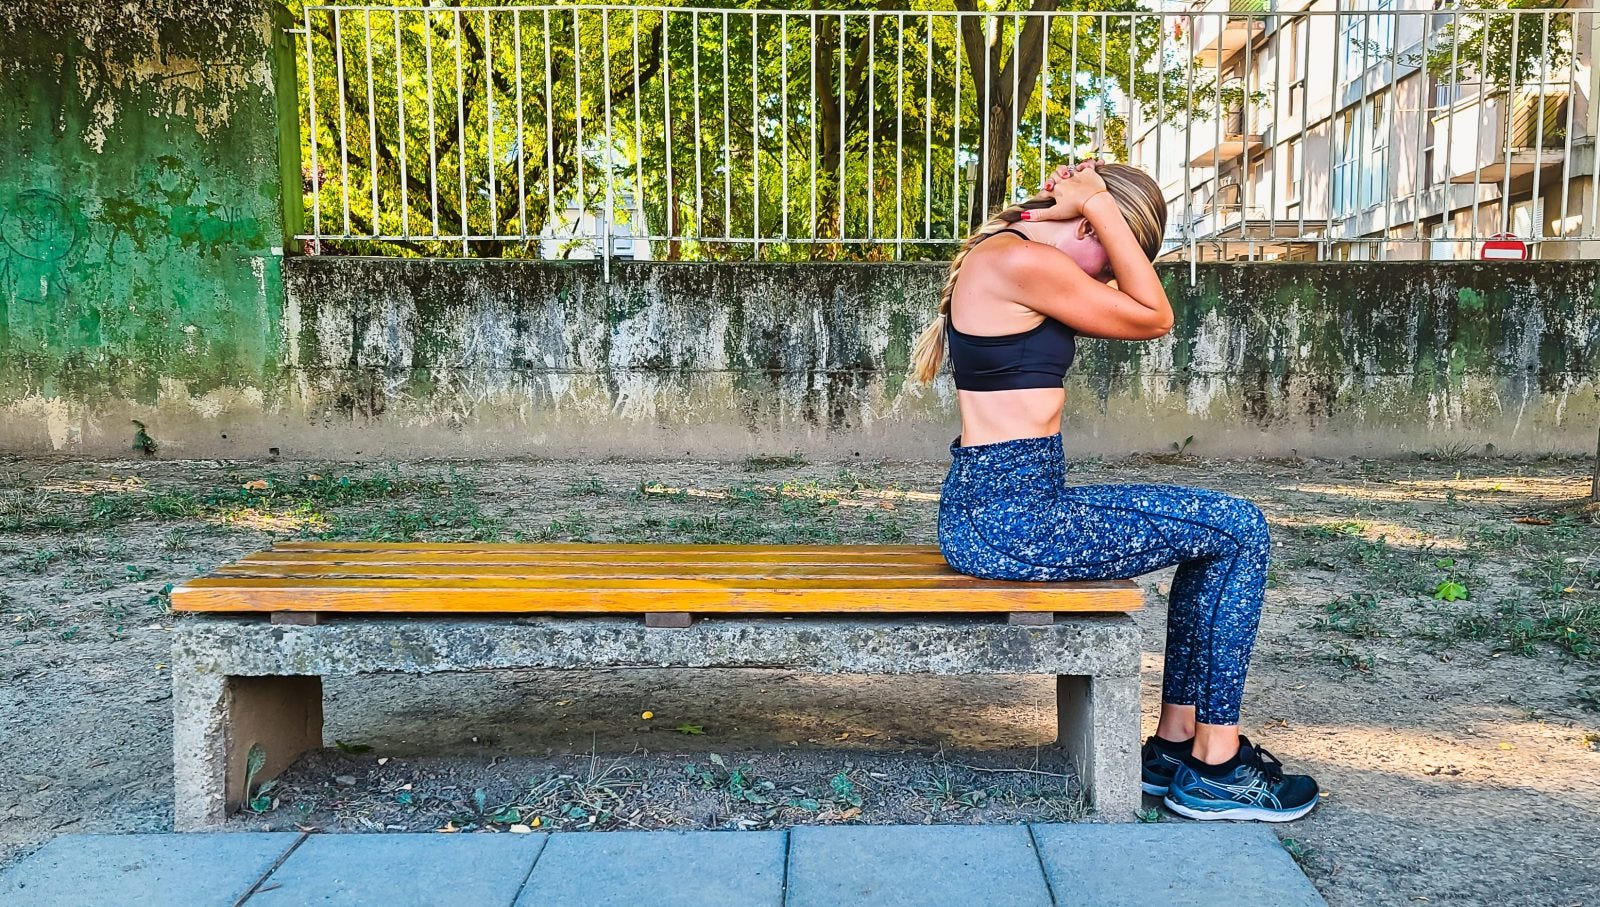 Woman doing a neck stretch on a bench in a park.